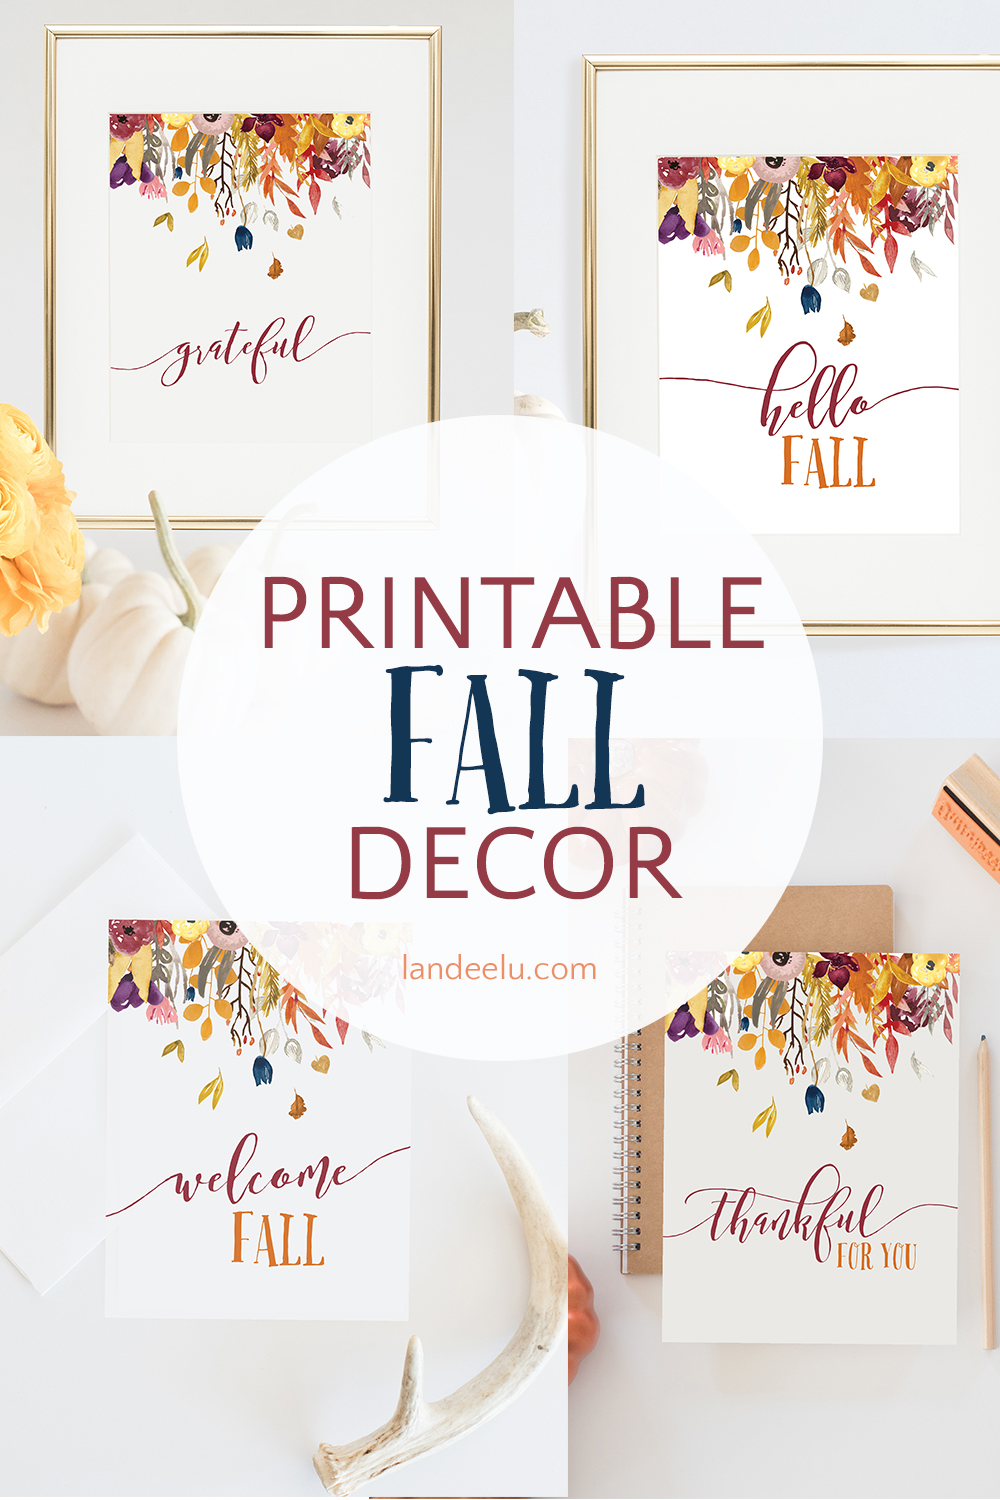 Beautiful printable fall decor collection! Four different images to choose from! #fallprintable #falldecor #diyfalldecor #falldesign